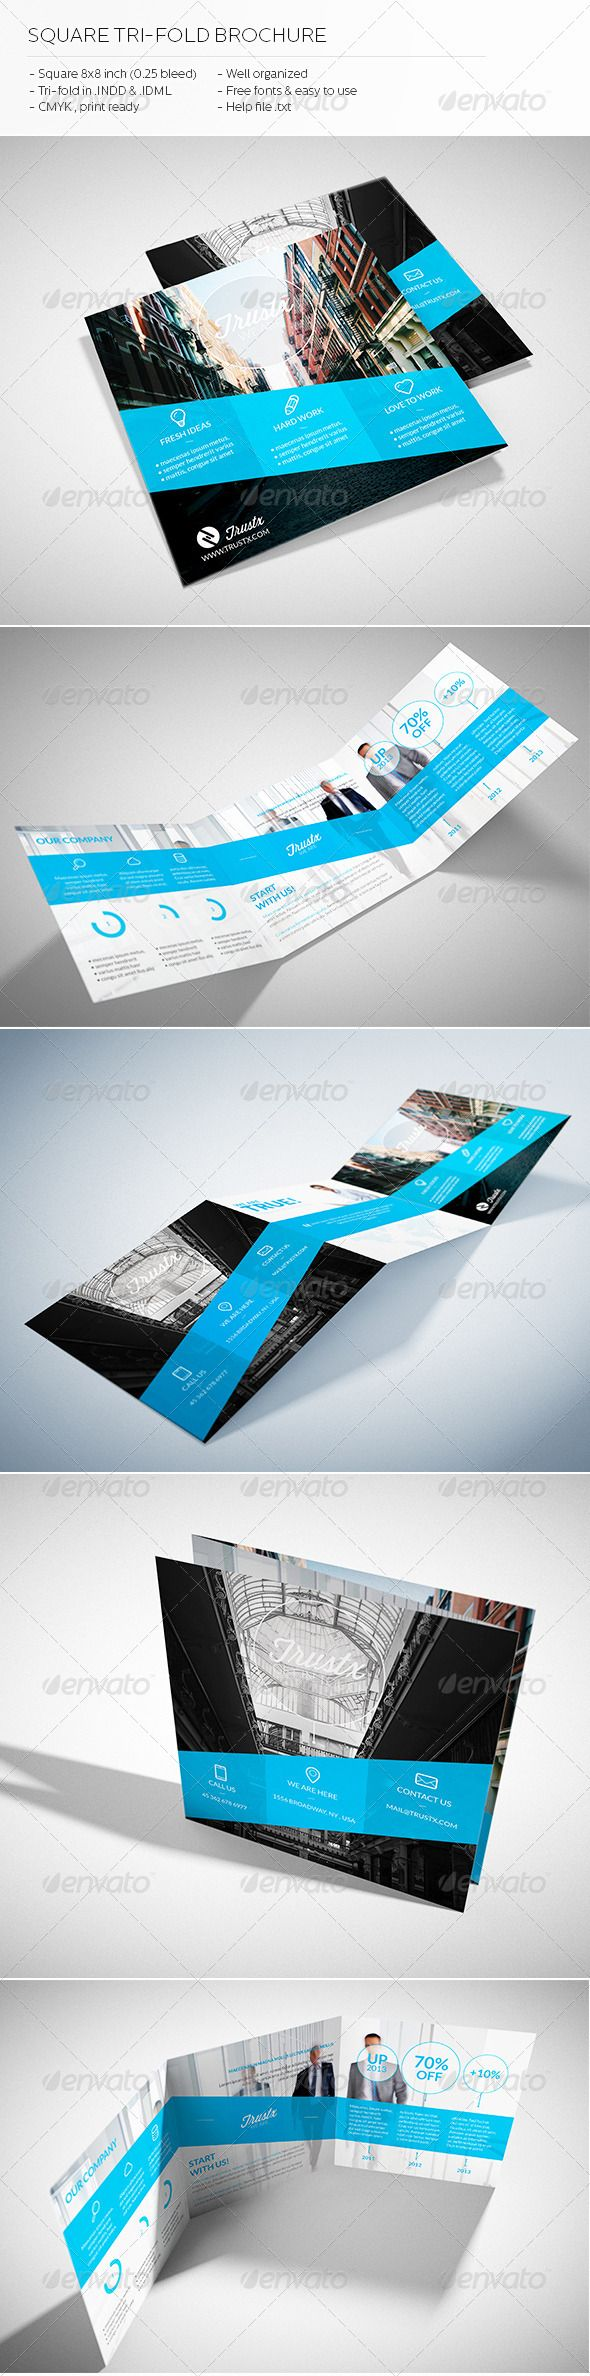 Trustx - Square Tri-fold Brochure  #clean #corporate #folio • Click here to download ! http://graphicriver.net/item/trustx-square-trifold-brochure/5427991?s_rank=12&ref=pxcr